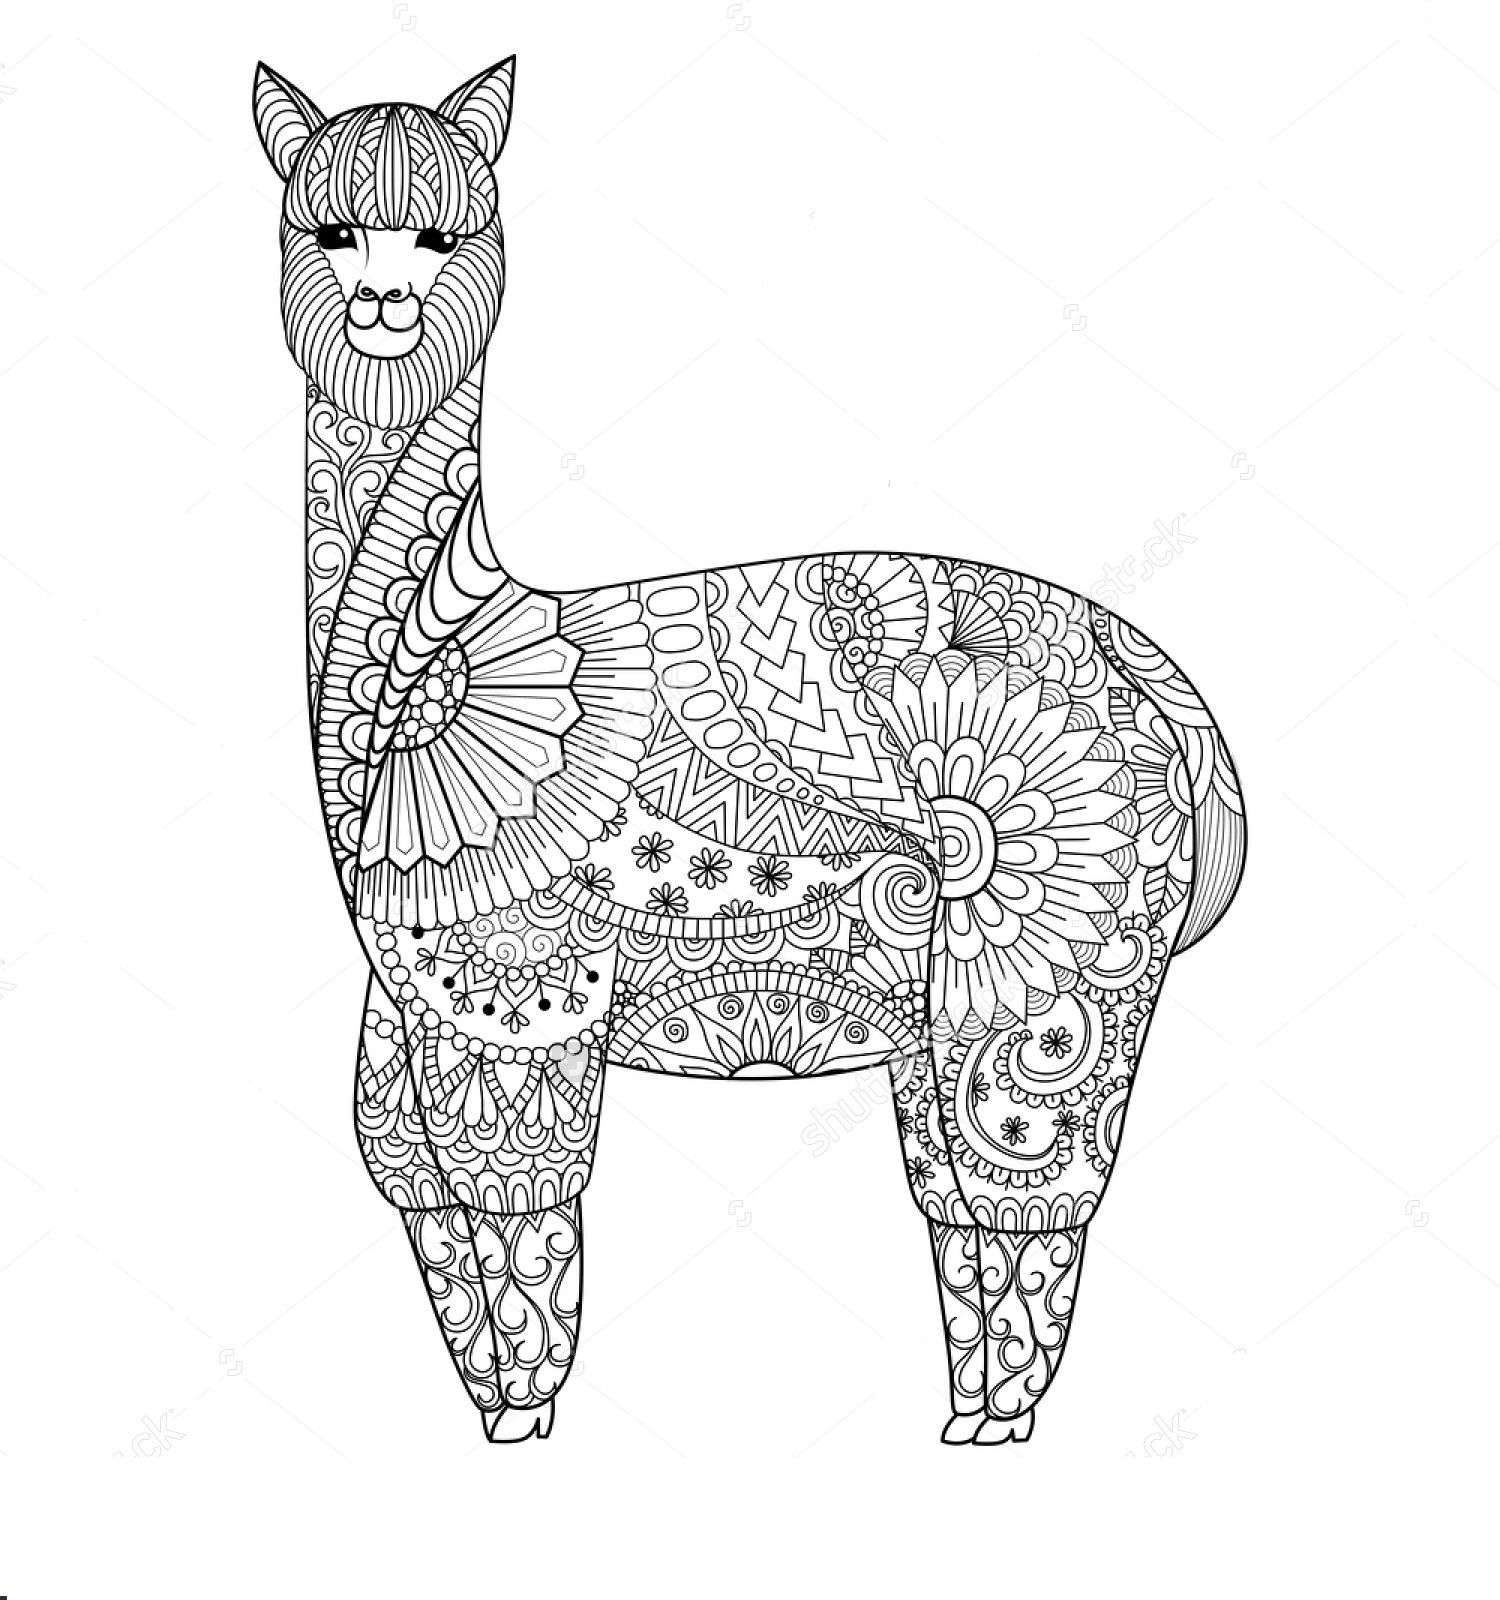 Llama Christmas Coloring Pages With Image Result For Page Inspired By Chile Pinterest